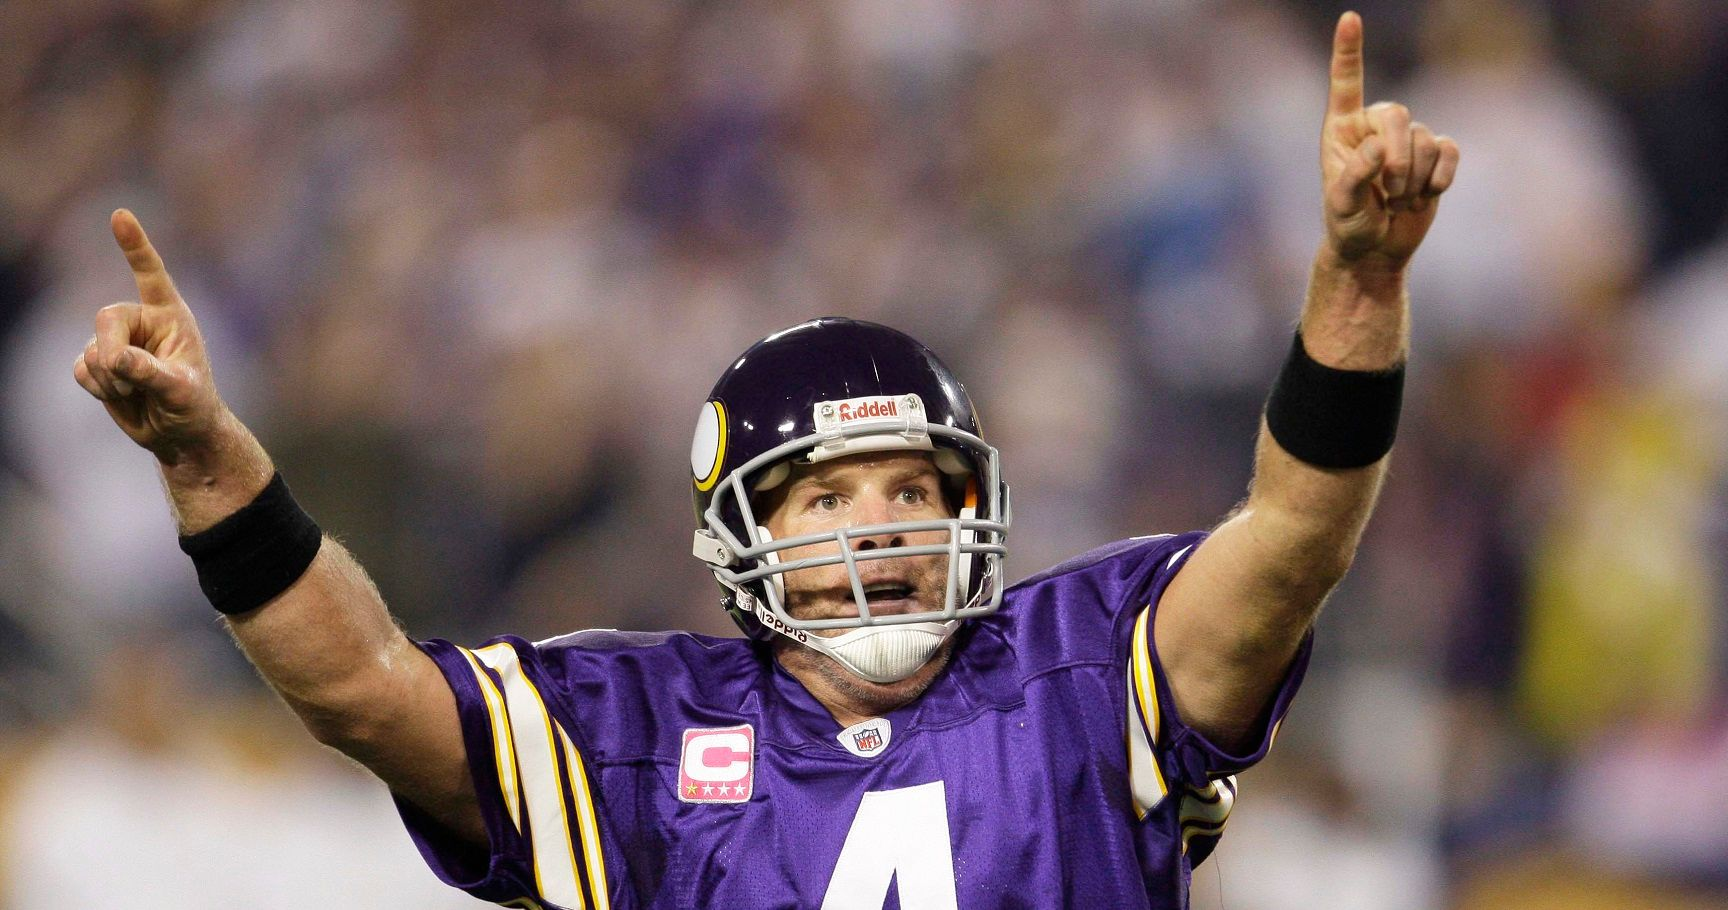 Jenn Sterger: Brett Favre Scandal - Photo 1 - Pictures - CBS News Photographs of brett favre